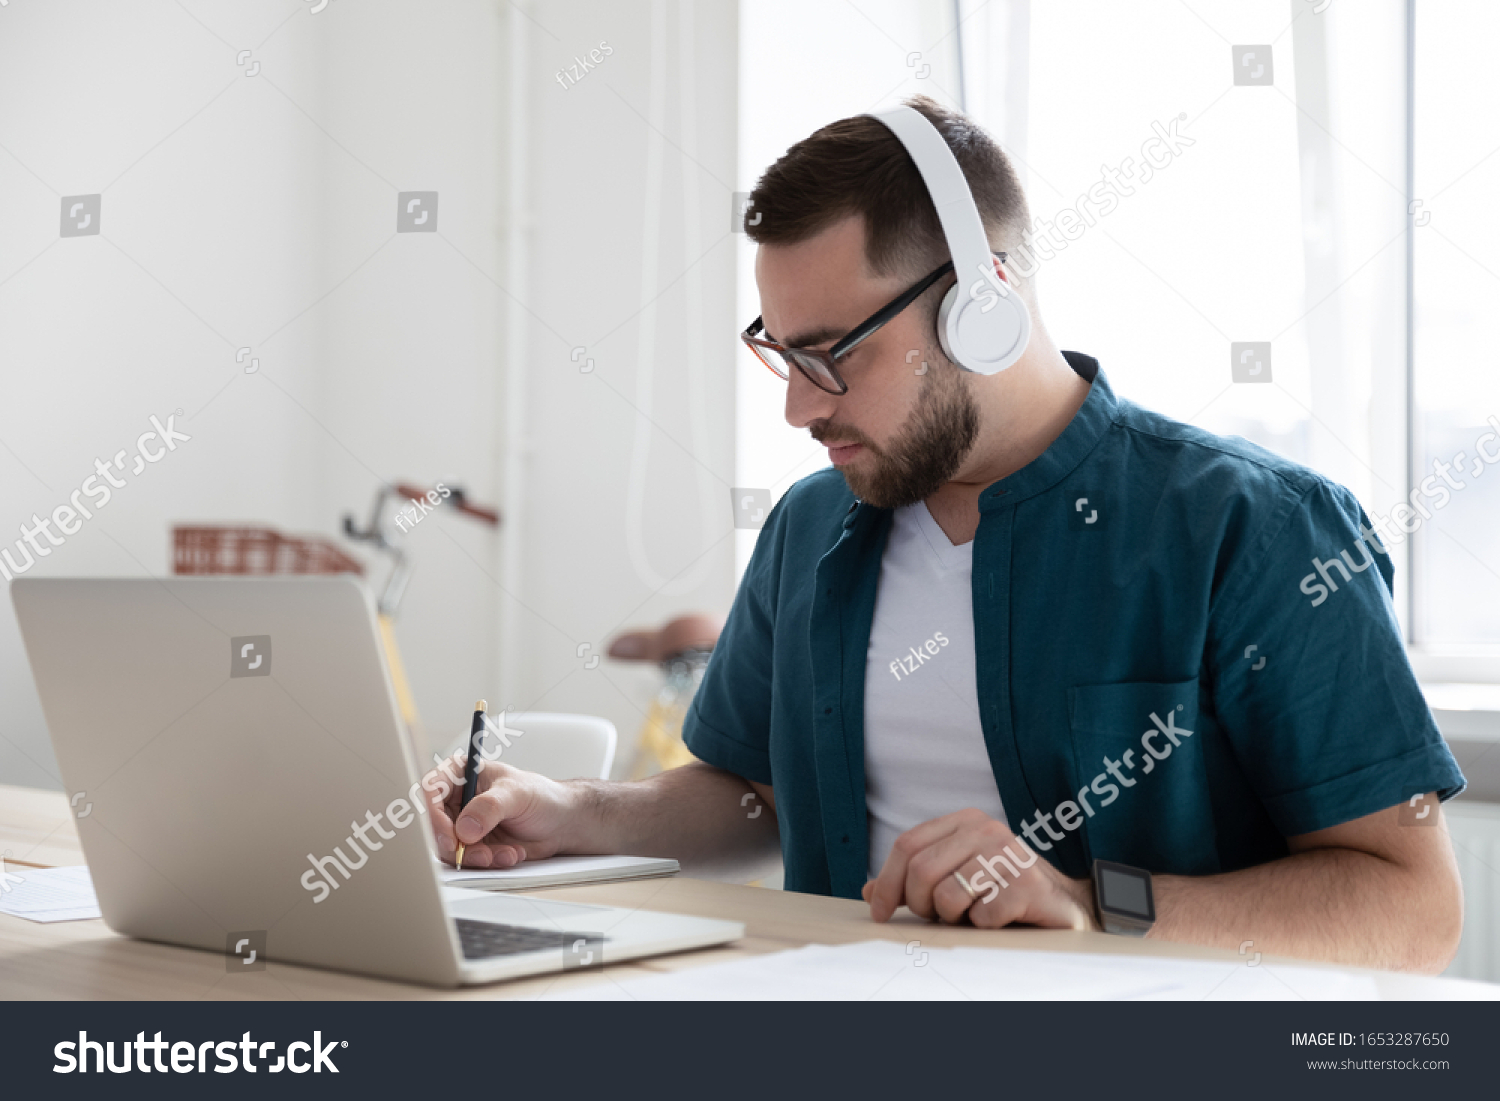 Focused young man businessman company worker employee in glasses wearing wireless headphones, watching educational webinar lecture seminar on laptop online, writing down notes in modern office. #1653287650